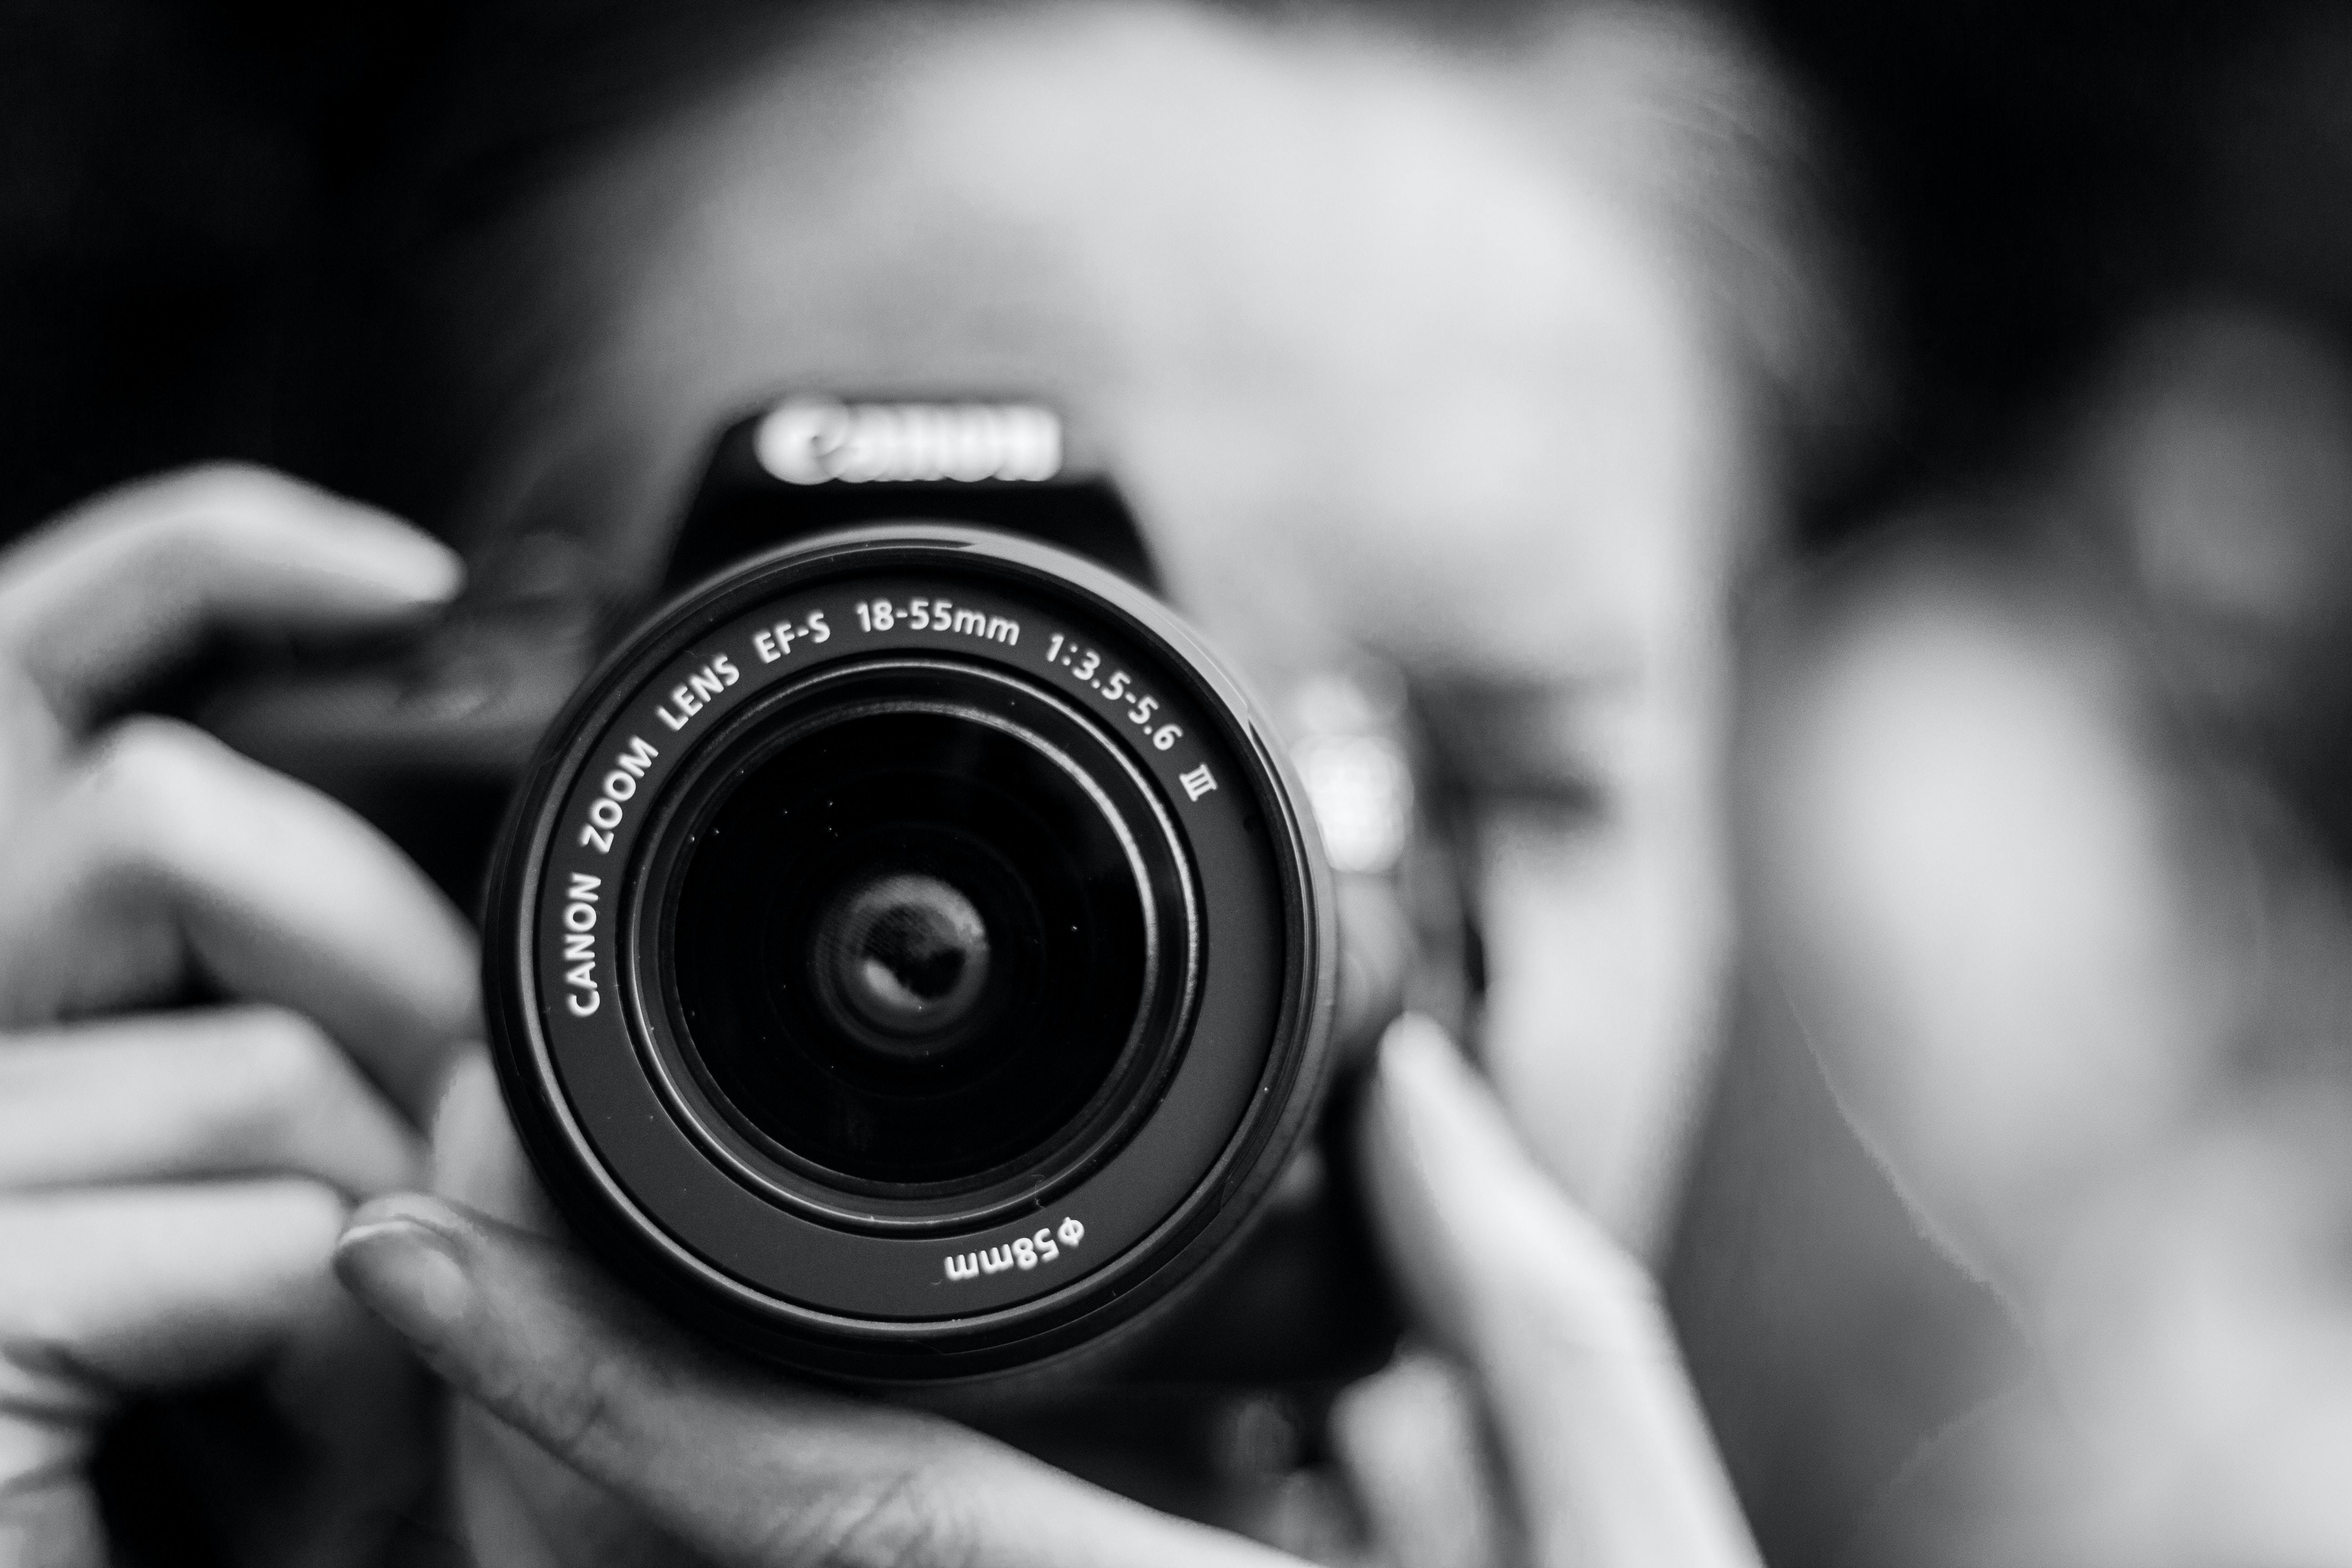 A woman holding a camera and focusing to take a shot